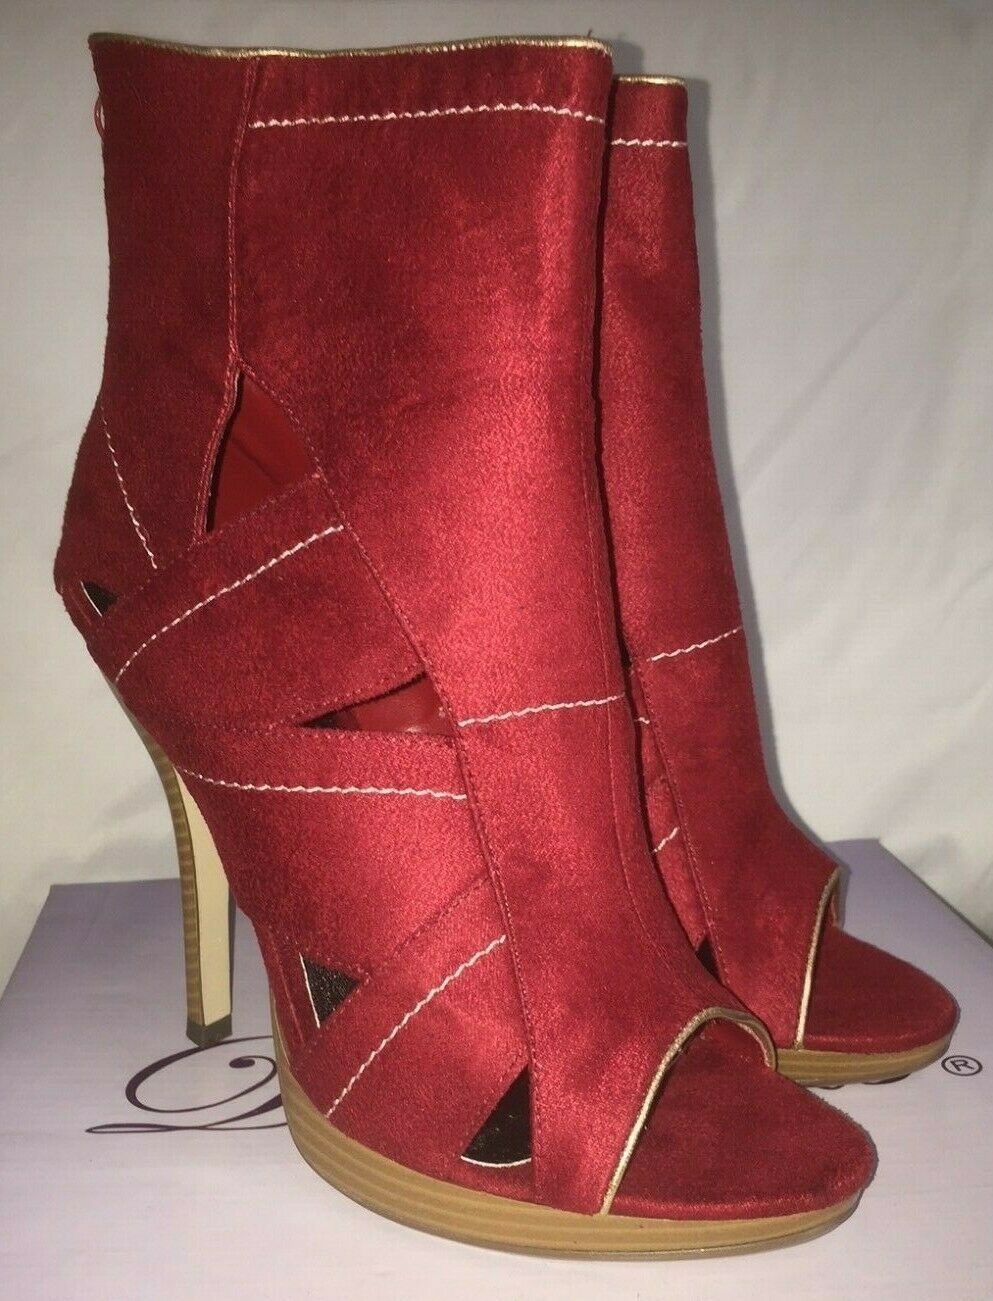 NIB Women's Delicious Gabriel Red High Heel Platform Ankle Booties Size 8.5